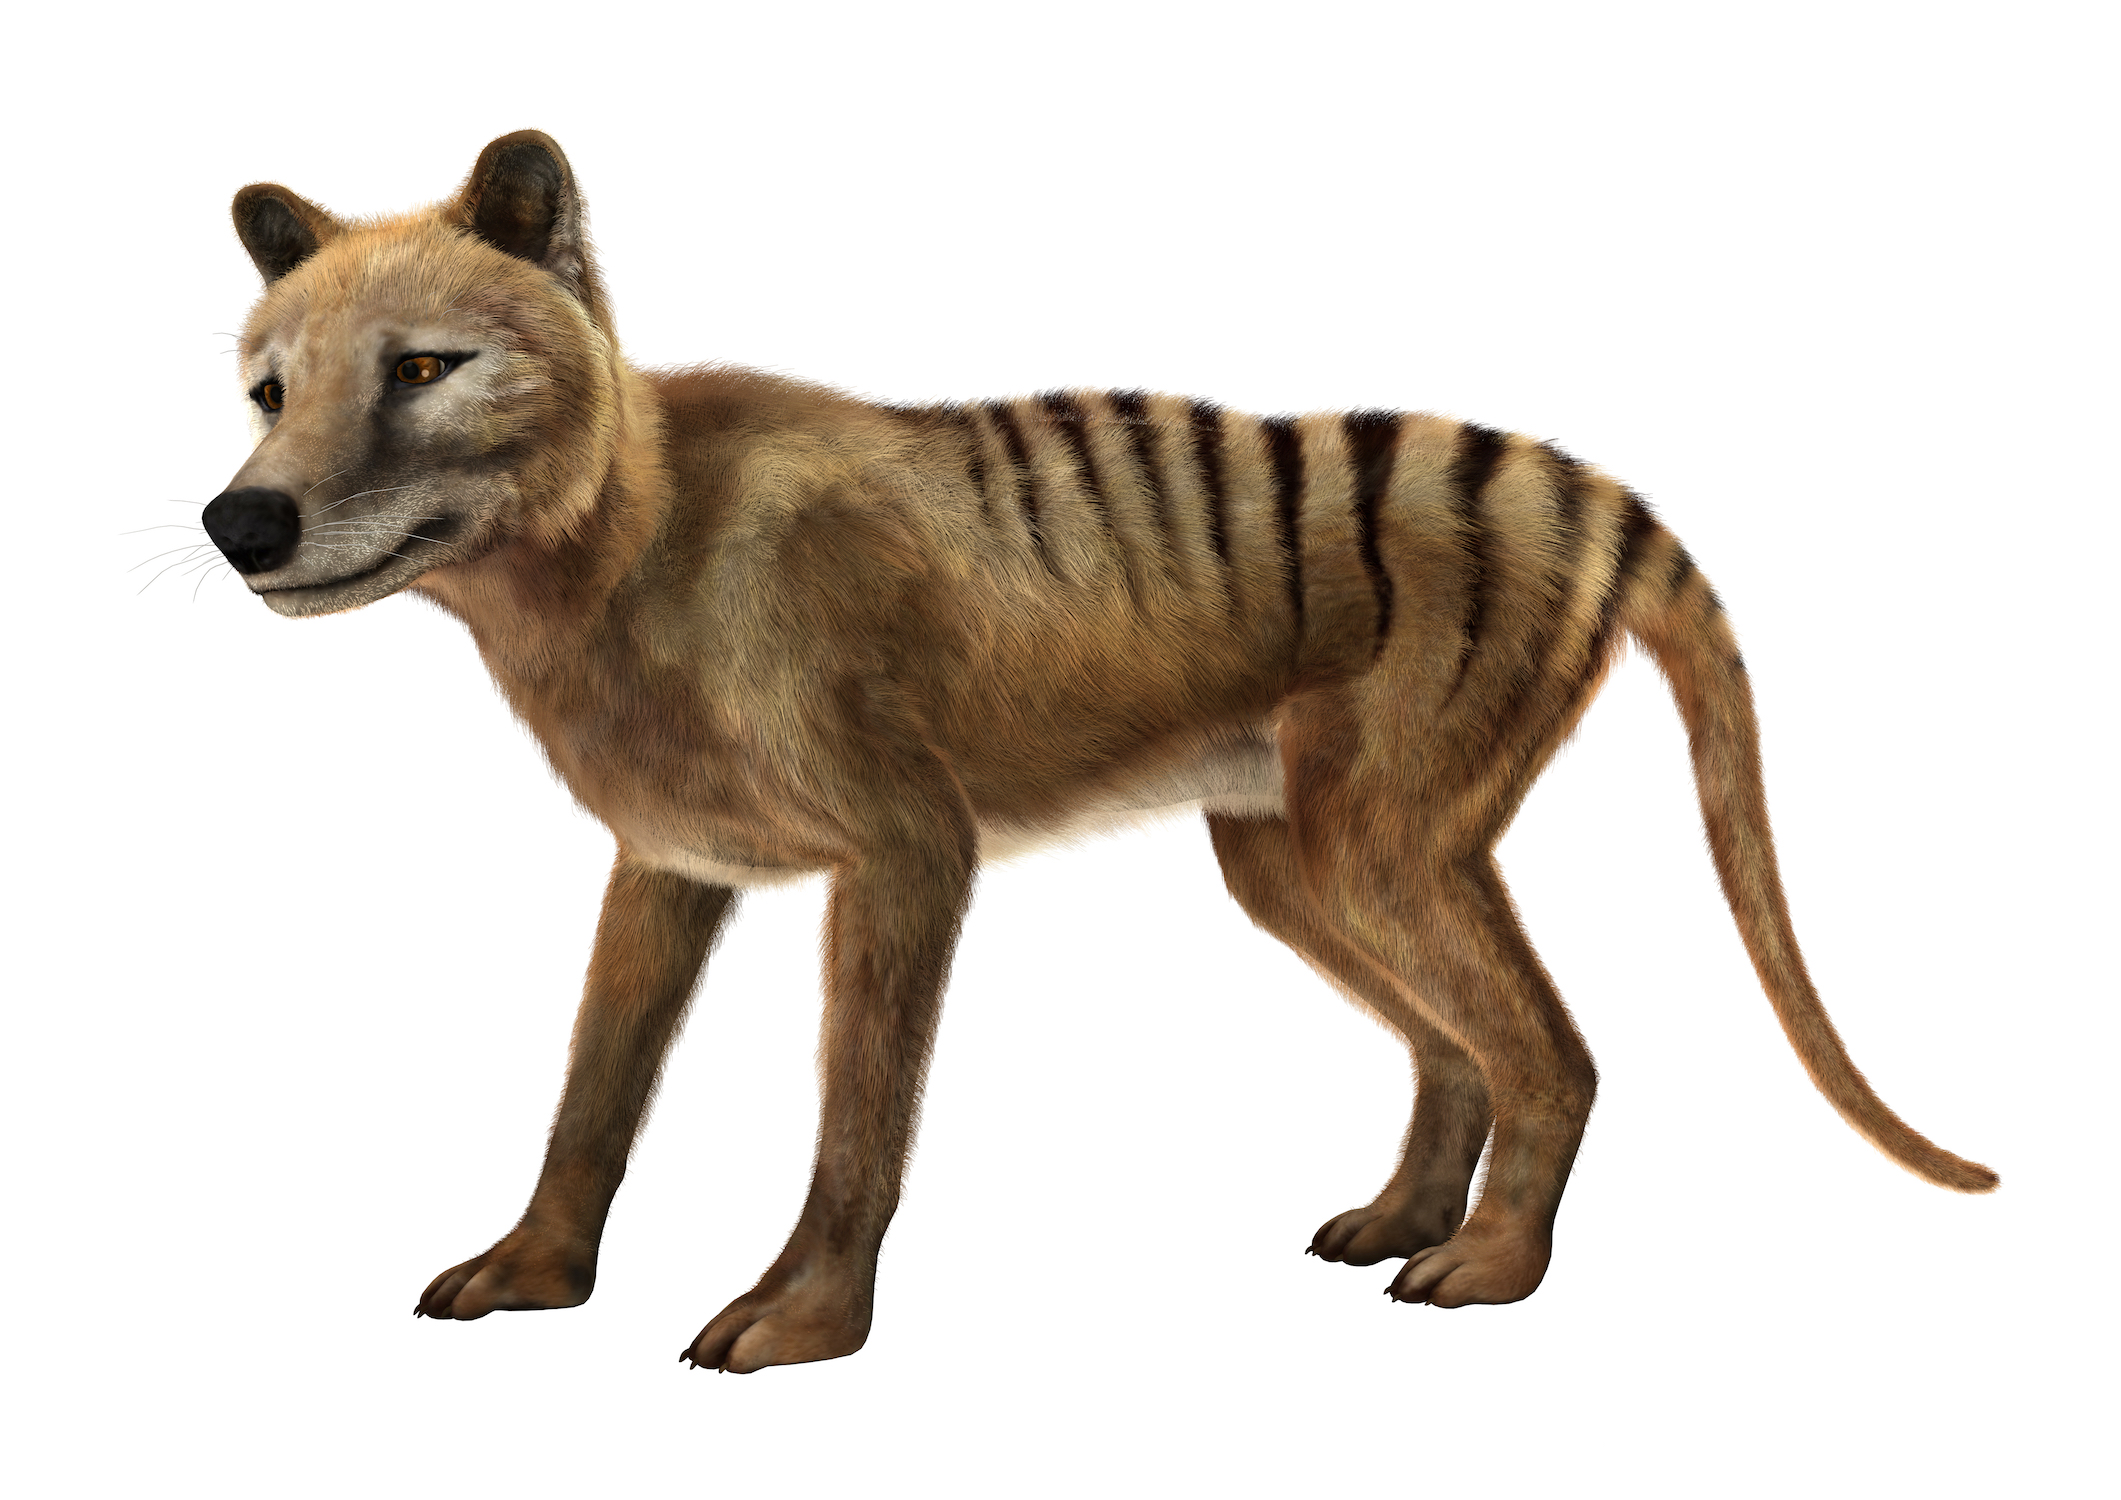 Scientists are one step closer to bringing back a long-extinct species known as the Tasmanian tiger, or thylacine.